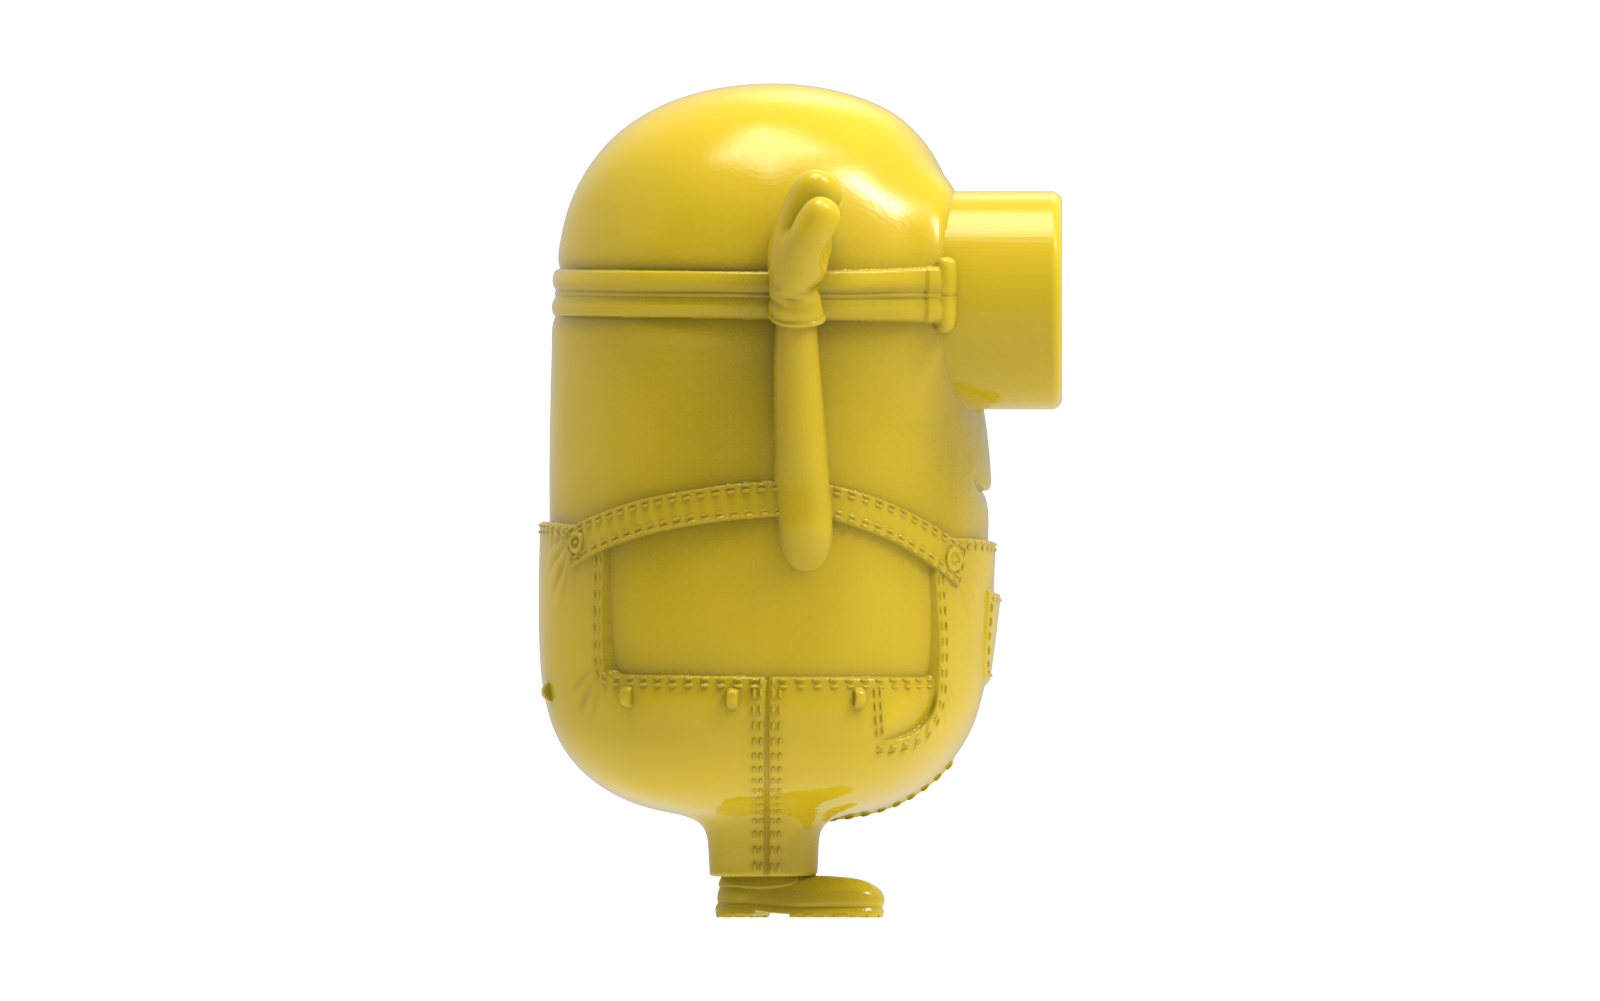 untitled.1652.png Download free STL file Minions Dave • Design to 3D print, hcchong